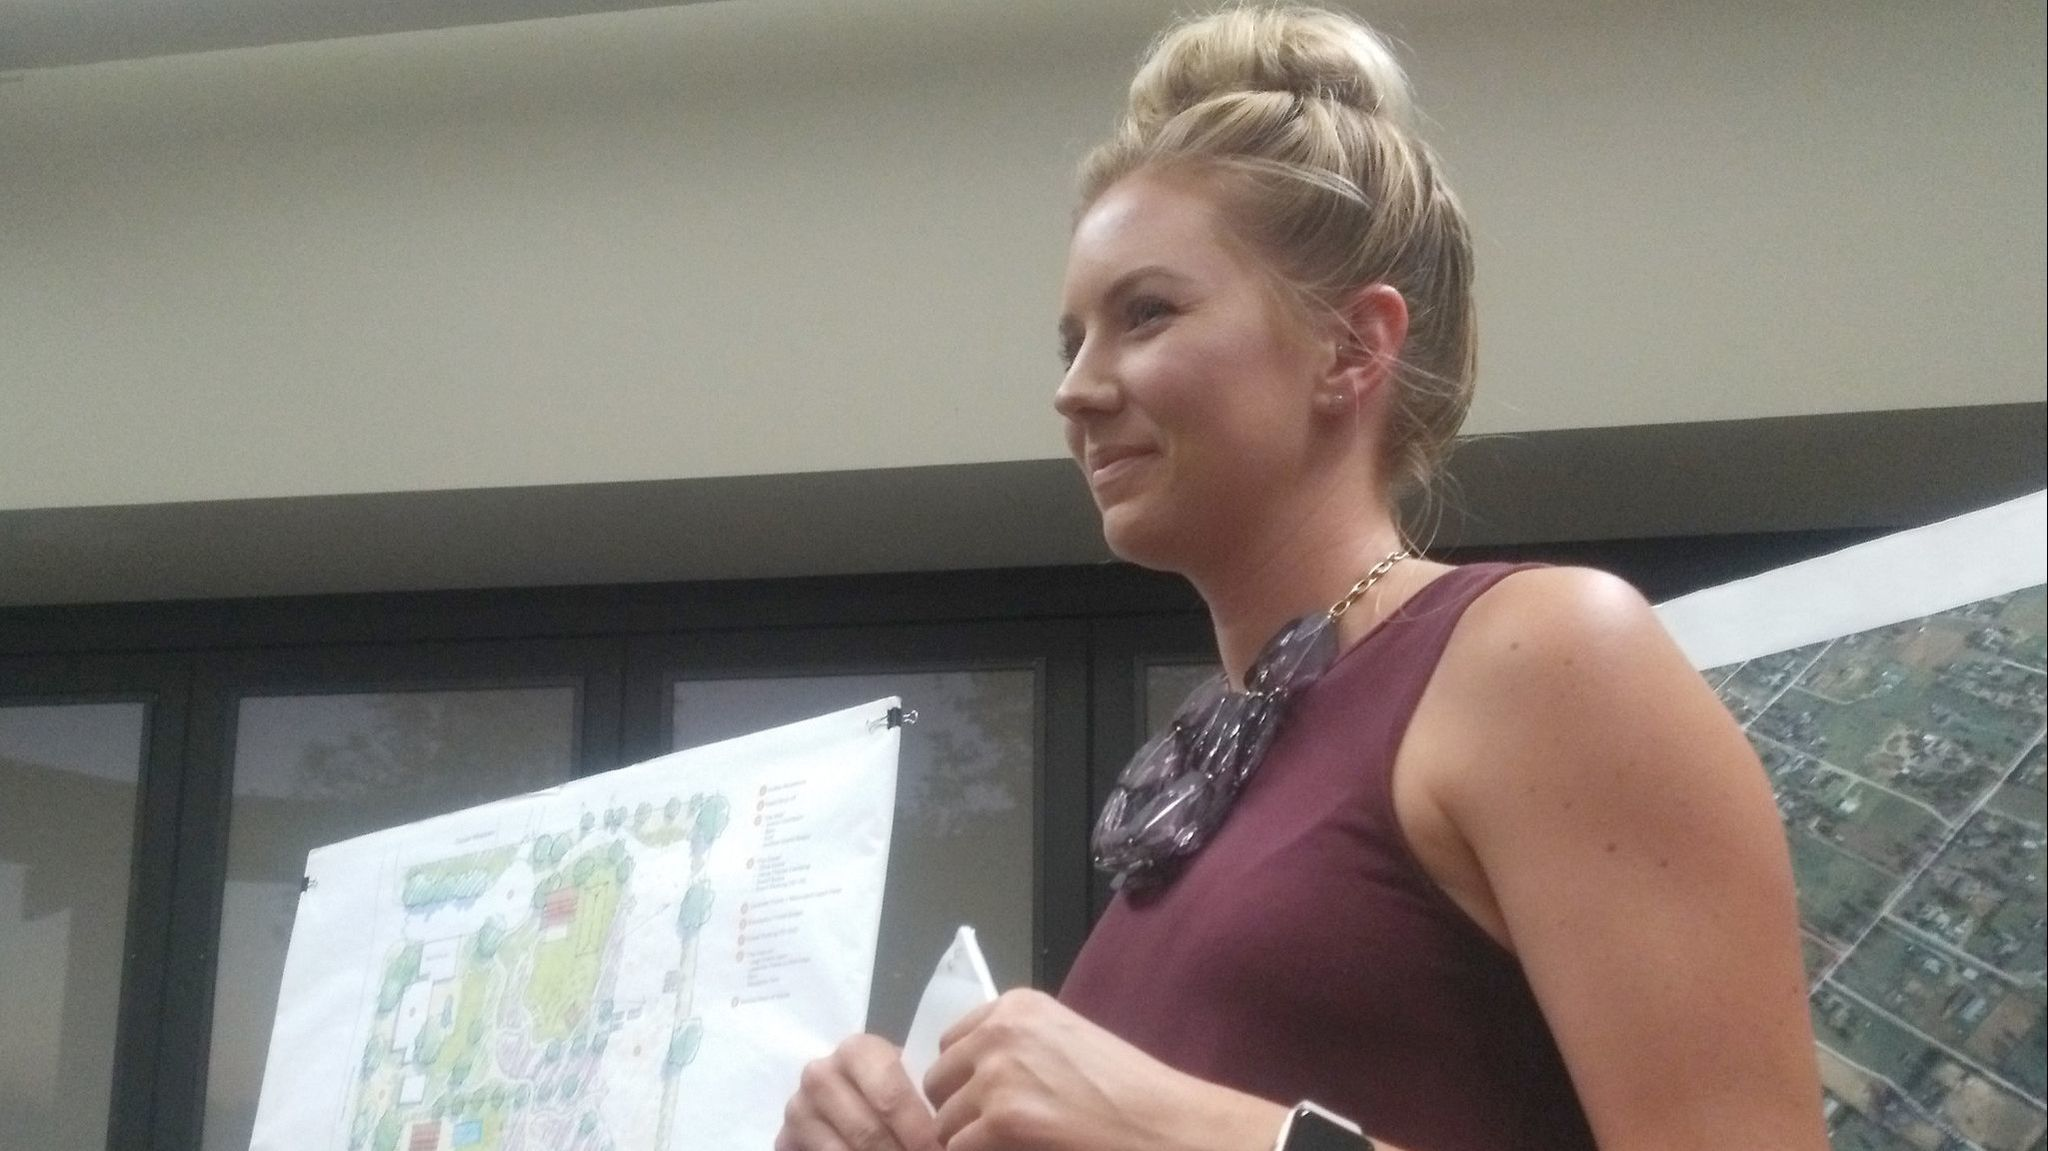 Lauren Schulte of Woodcrest Companies is the project manager of a proposed Lavender and Olive wedding event center. She is addressing noise and traffic concerns with neighbors.